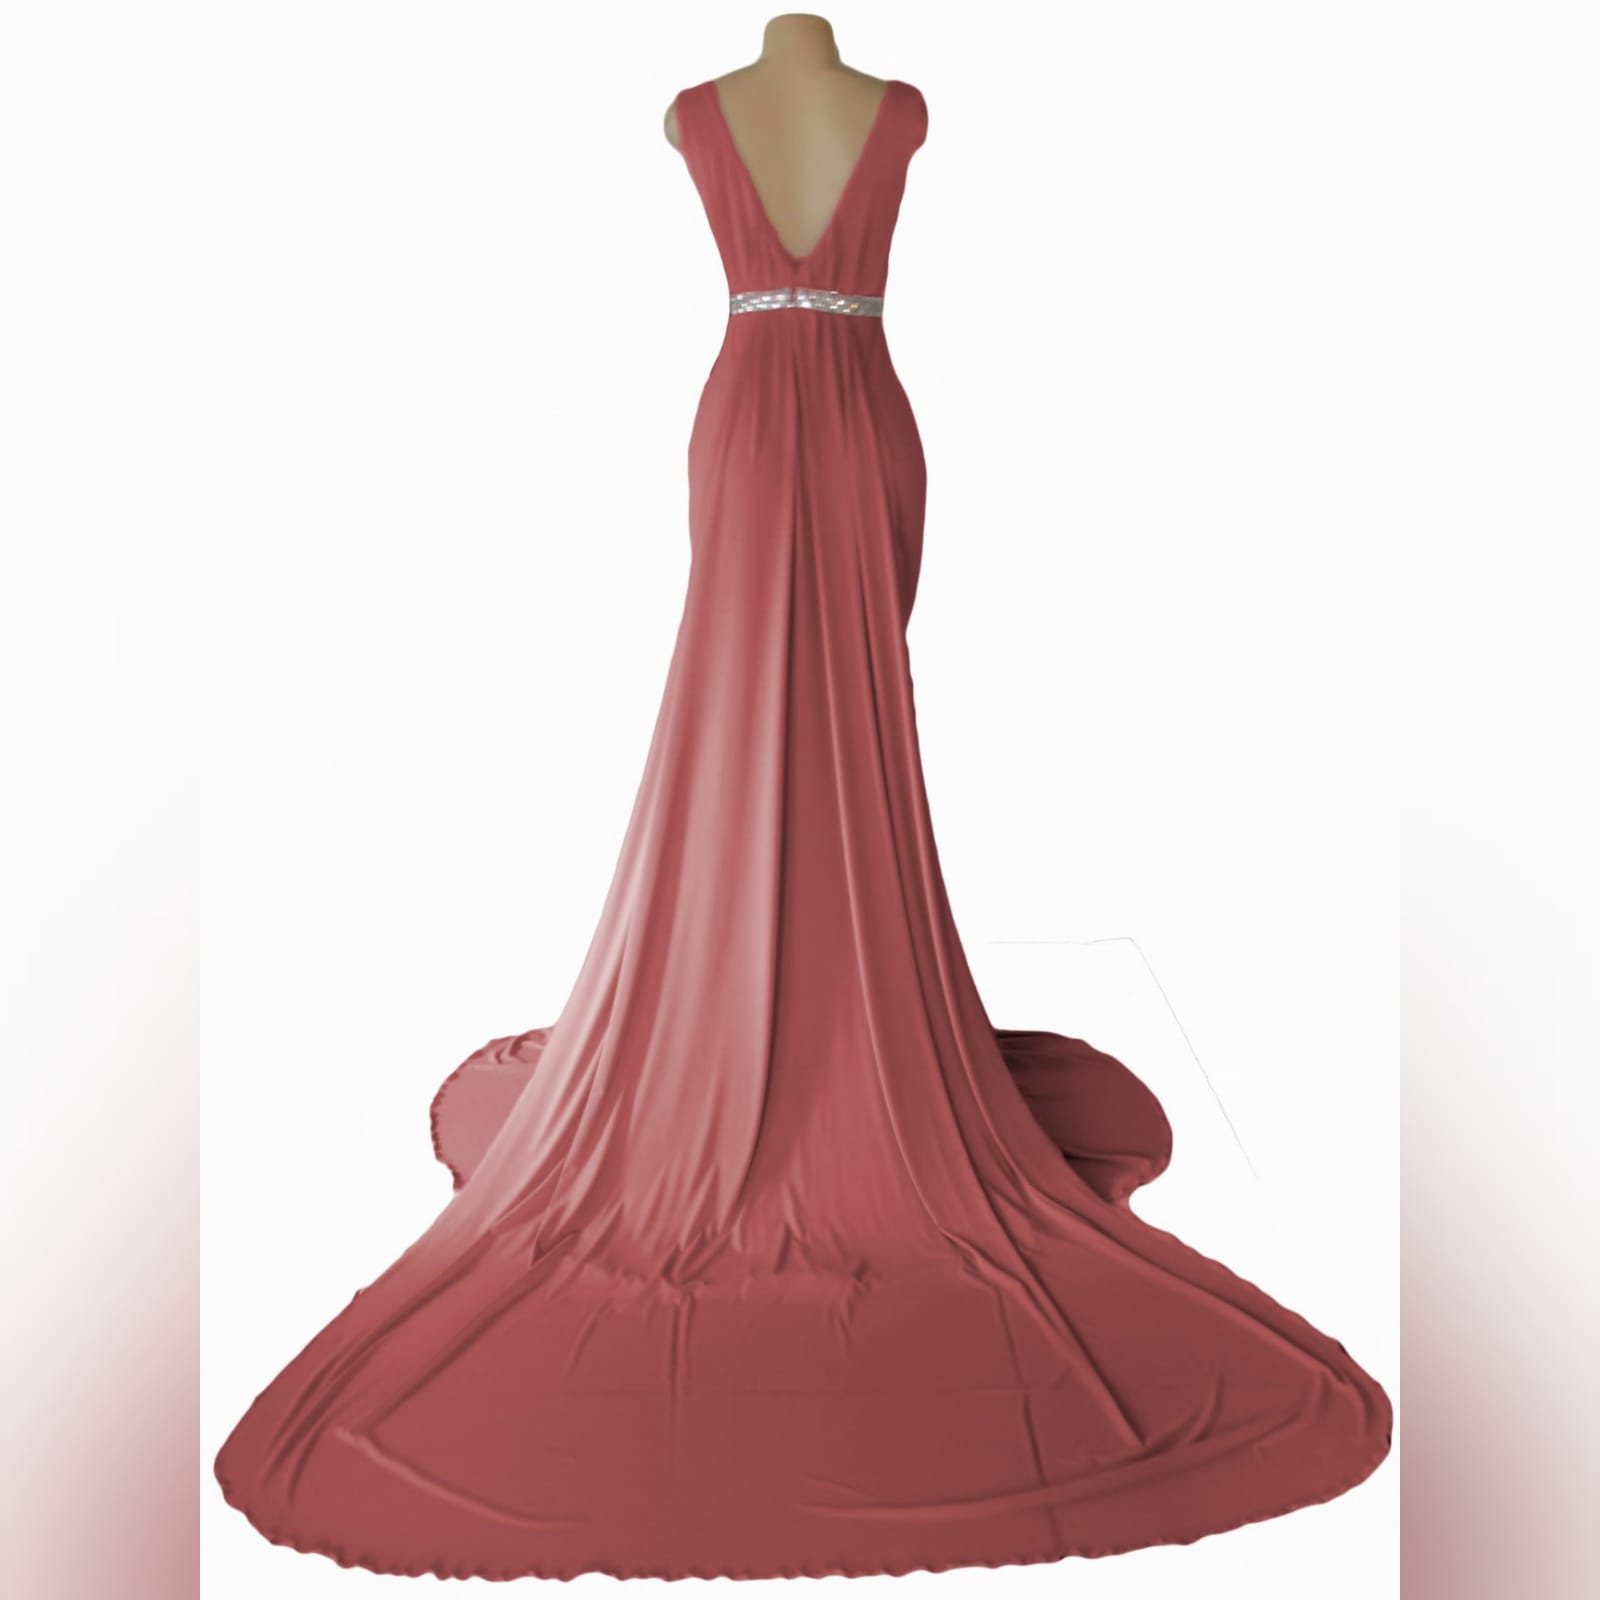 Dusty pink soft mermaid formal dress 2 this dusty pink soft mermaid formal dress was specially made for a prom dance. With a slight gather on the bodice and a rounded neckline. Dress has a double train. The long train is attached to the beaded removable belt.